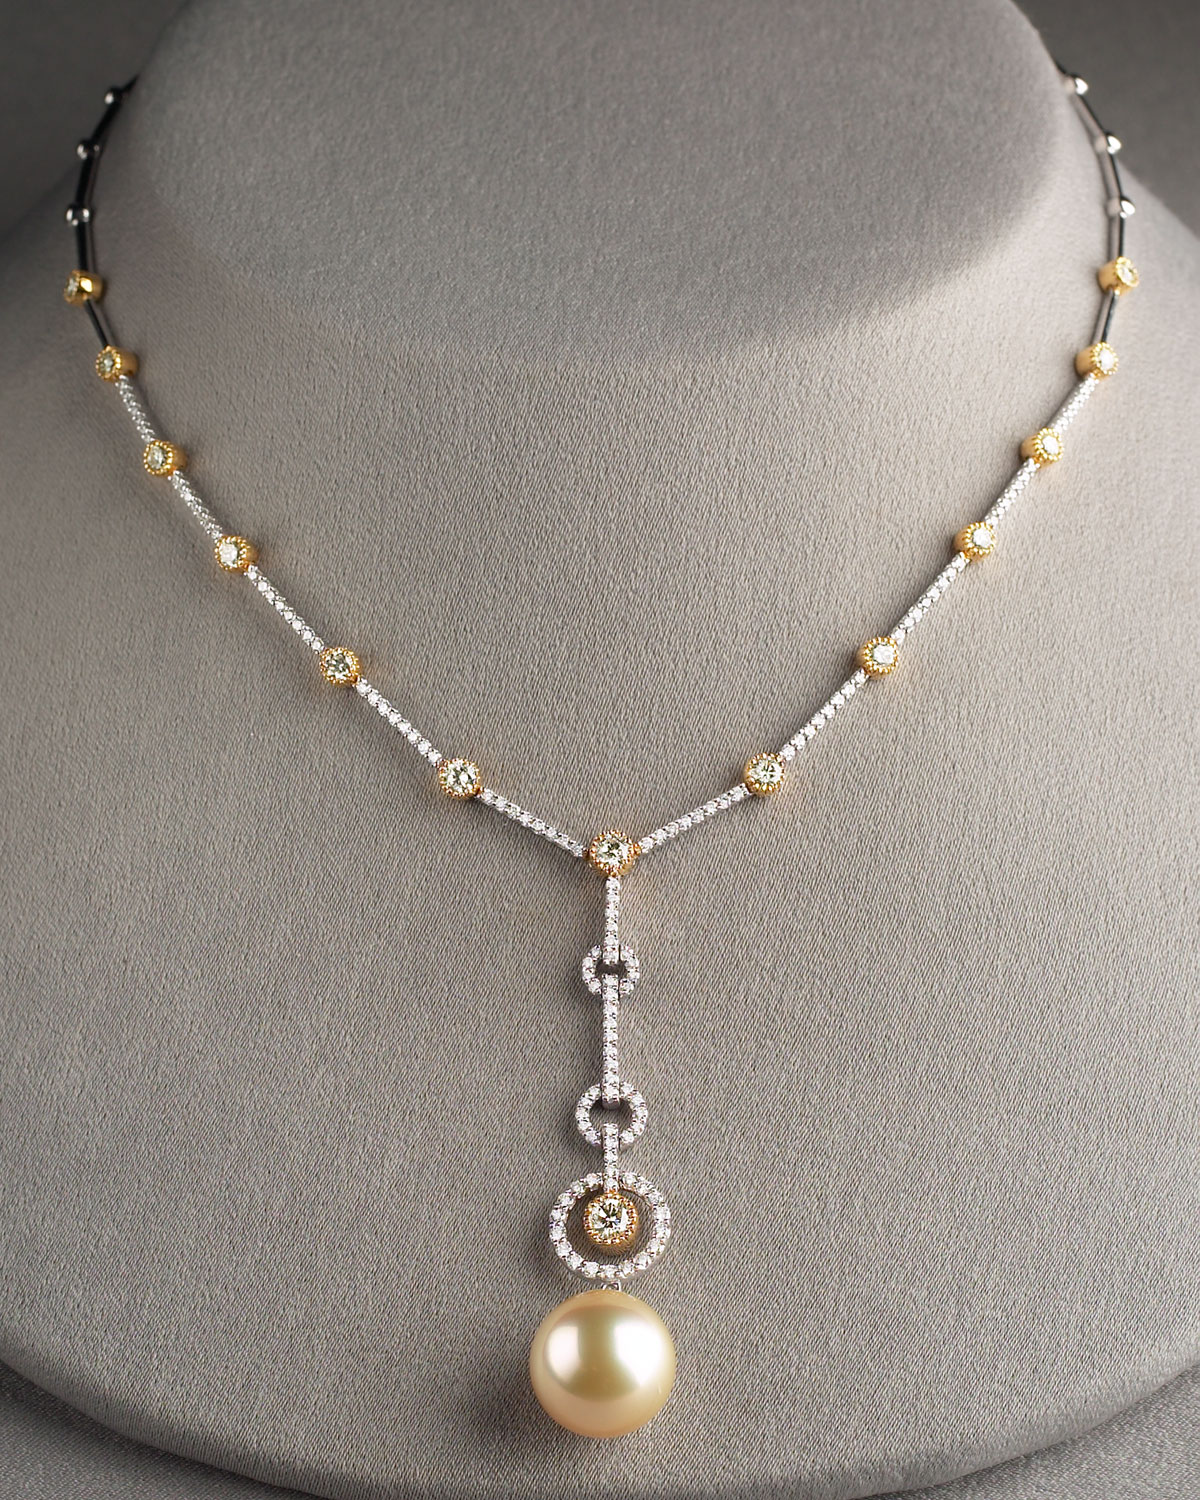 pearl cartier himalia diamond opulent jewelers necklace